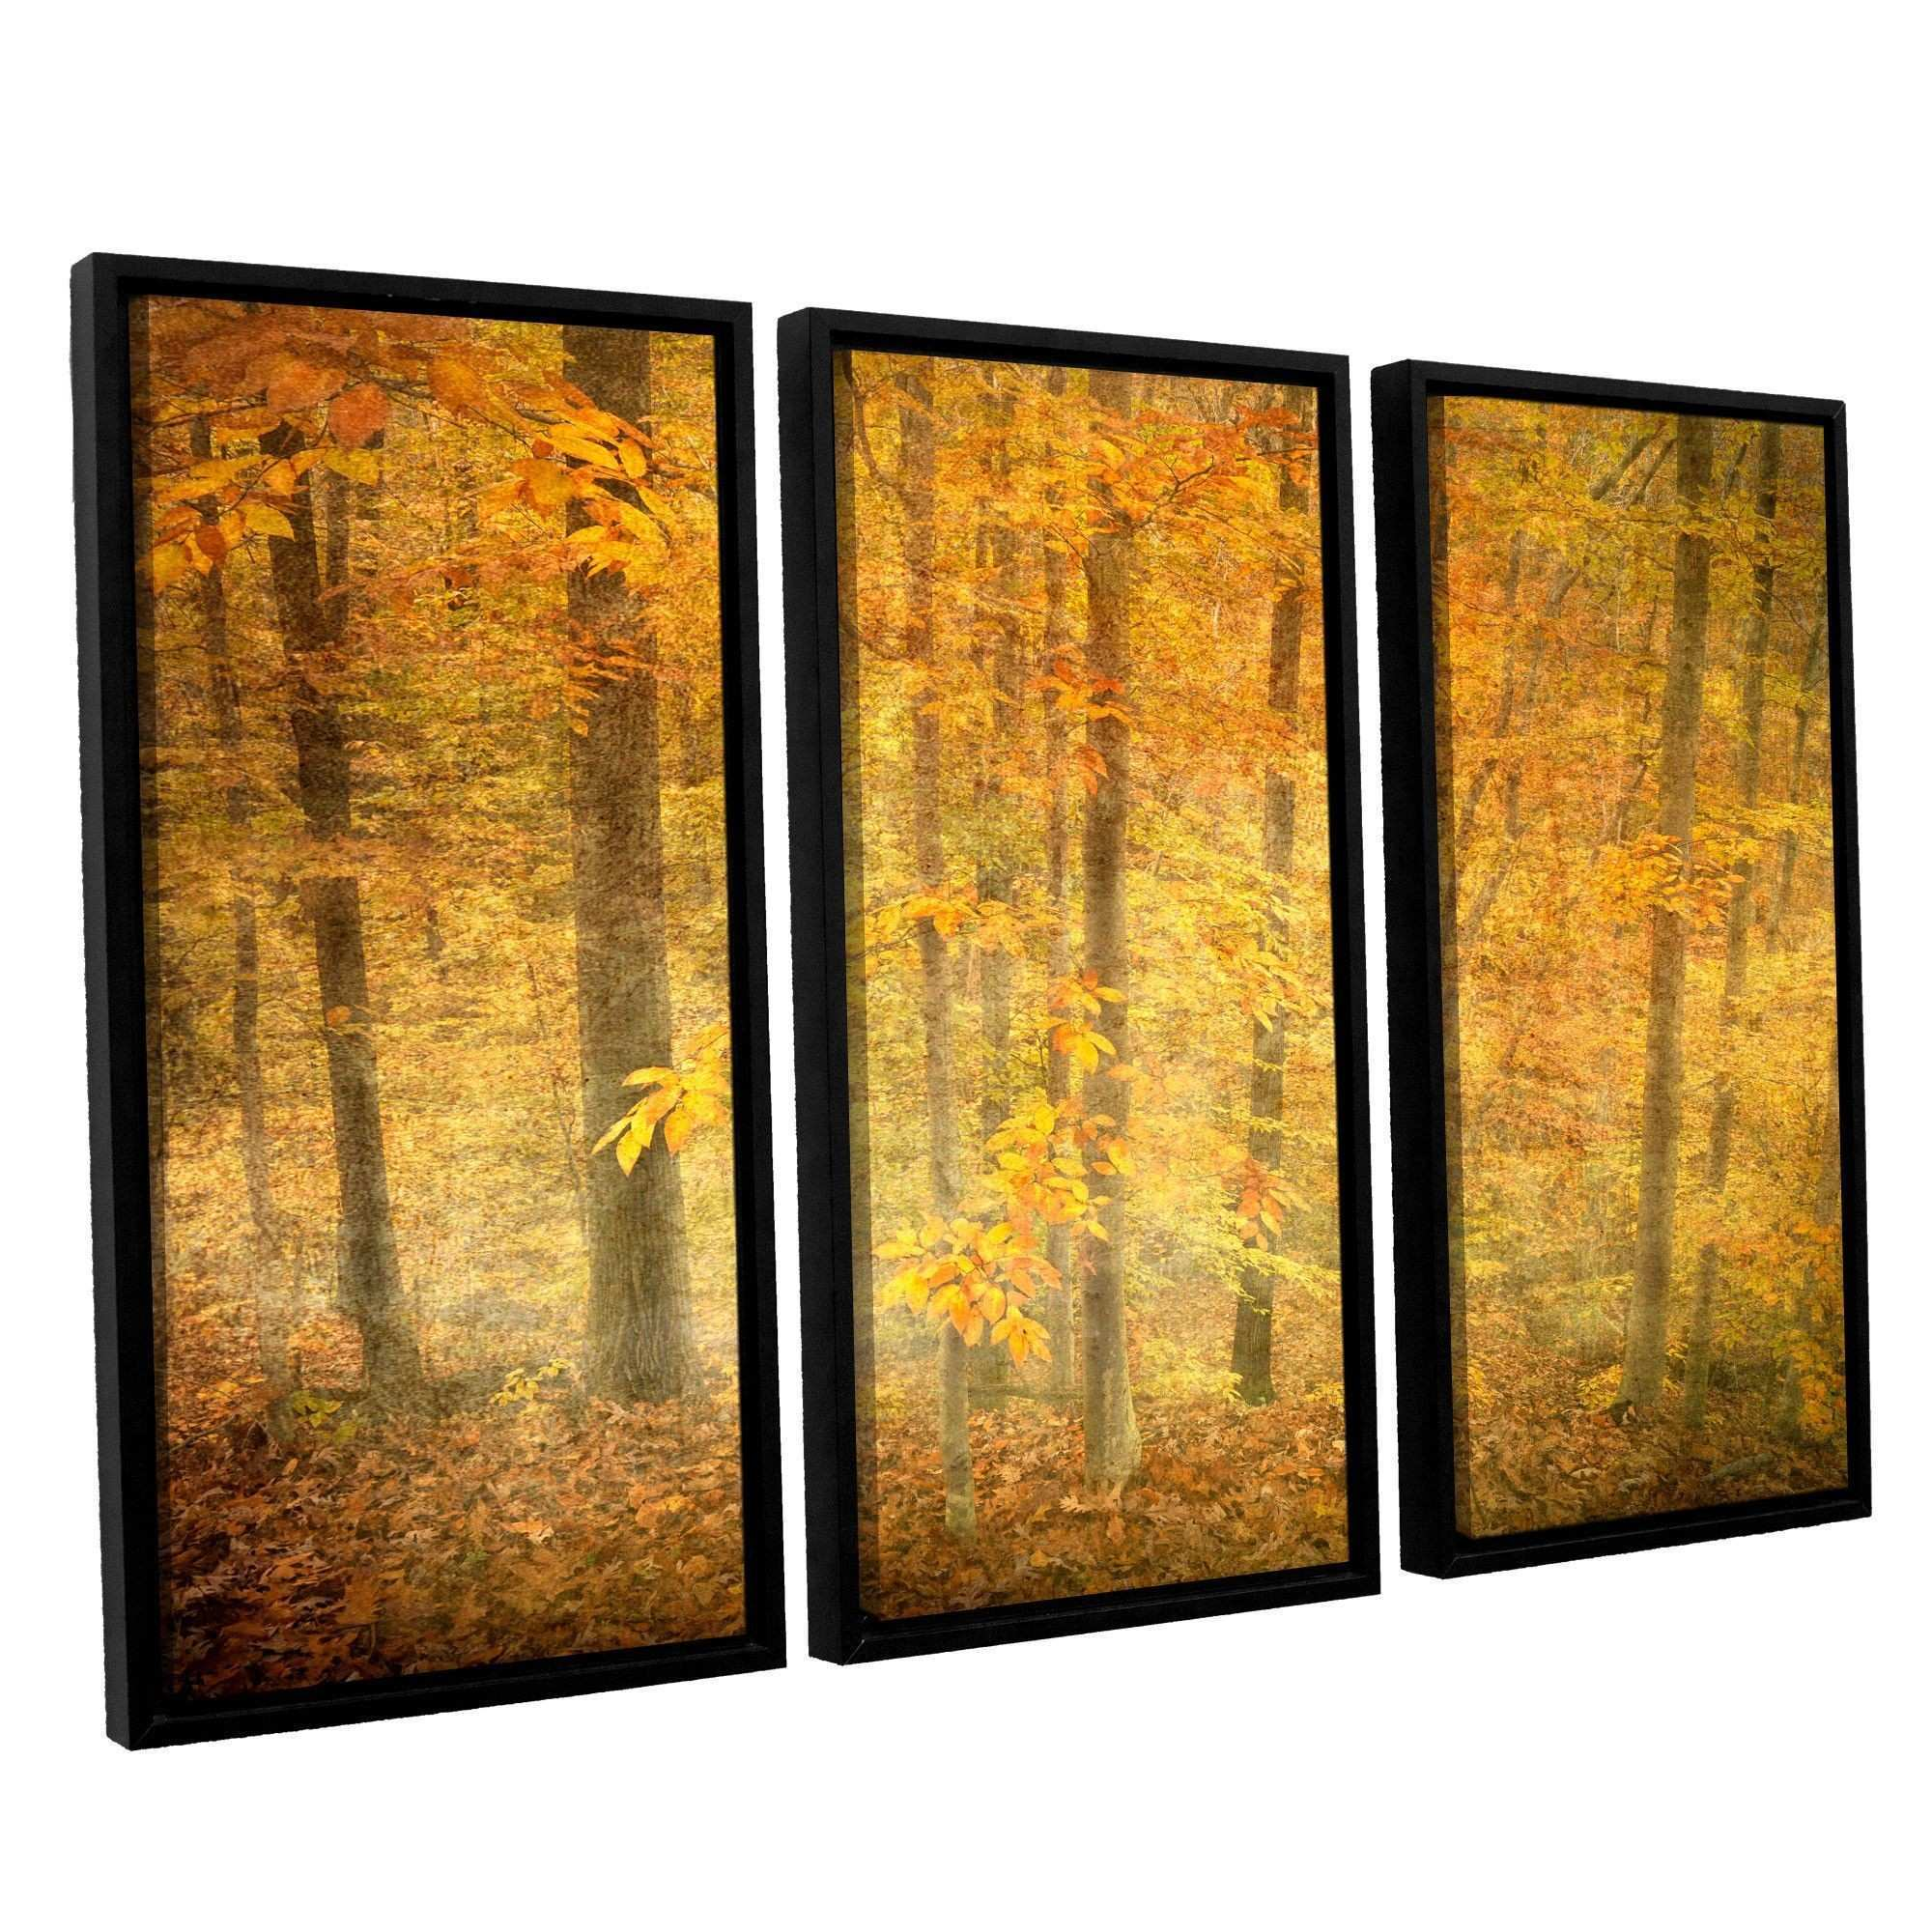 Lost In Autumn by David Kyle 3 Piece Floater Framed Canvas Set